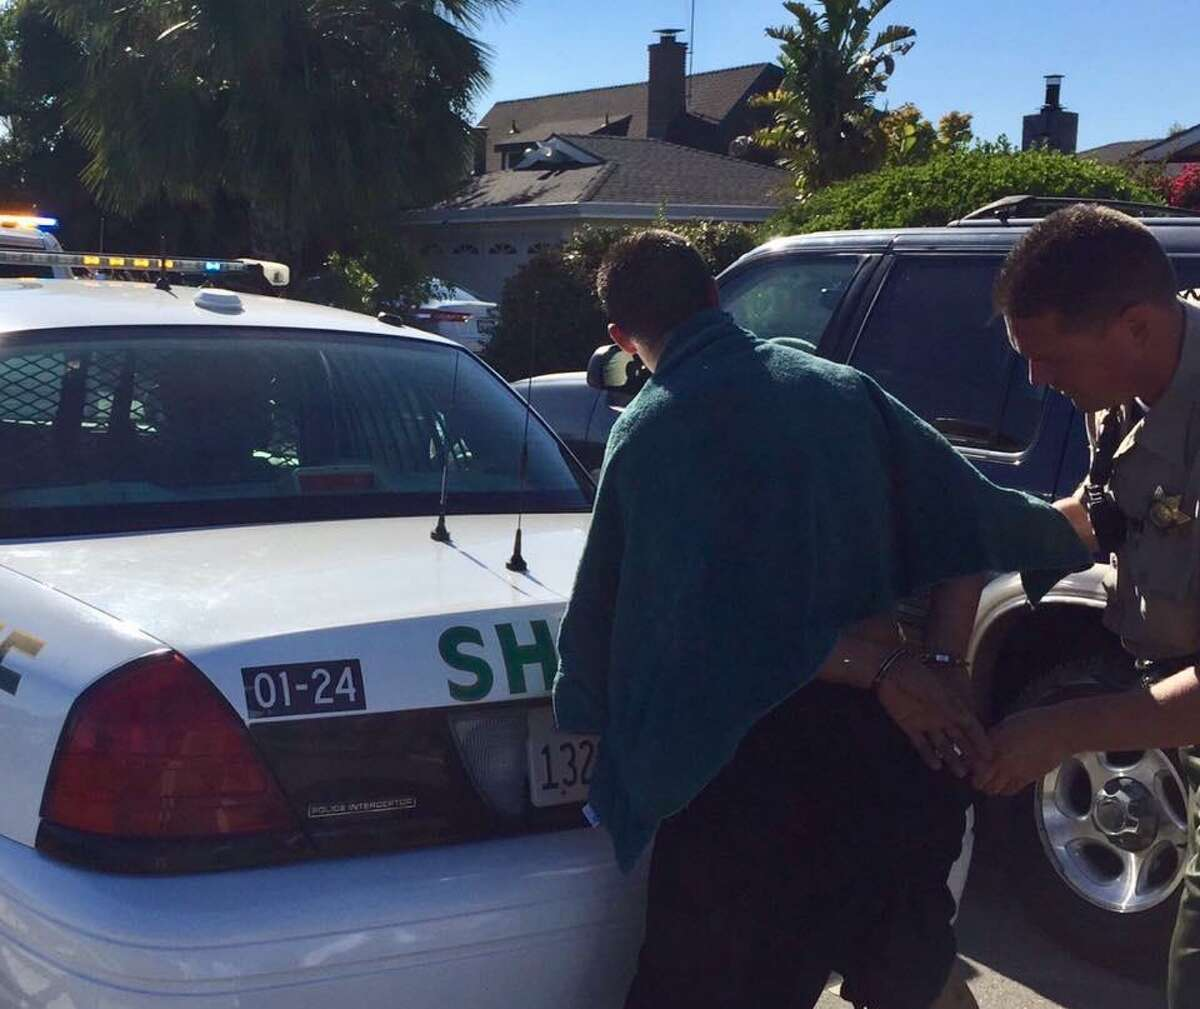 A Marin County Sheriff's deputy takes Francisco Reyes, 34, into custody on a probation violation after he and a pregnant woman were found moving into bank-owned home in Bel Marin Keys. Officials said Reyes answered a scam Craigslist ad and was duped into renting the house.